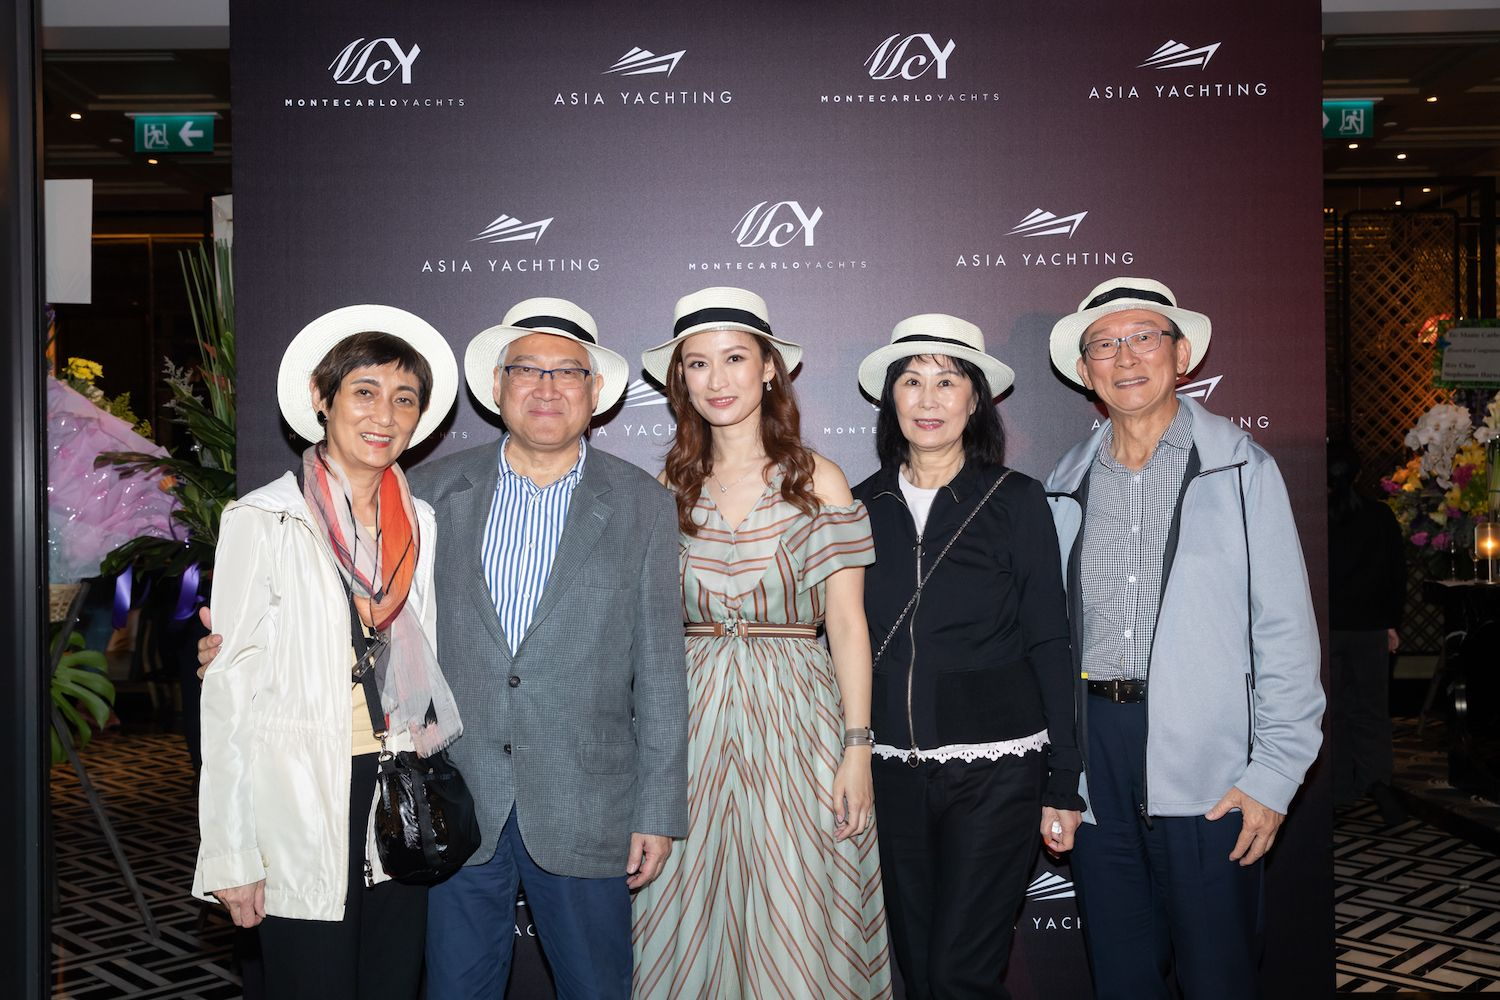 Sylvia Fung, William Fung, Colleen Fung, Alian Yu, Paul Yu